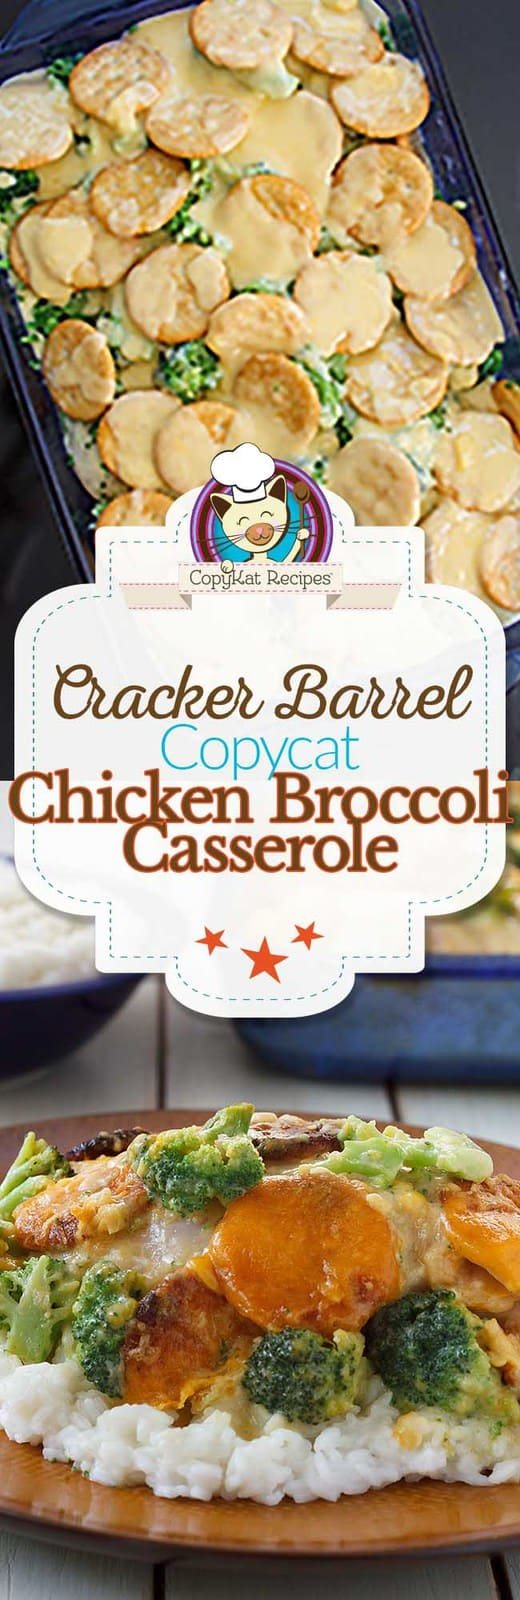 Make you own Cracker Barrel Broccoli Cheddar Chicken casserole at home with this copycat recipe.